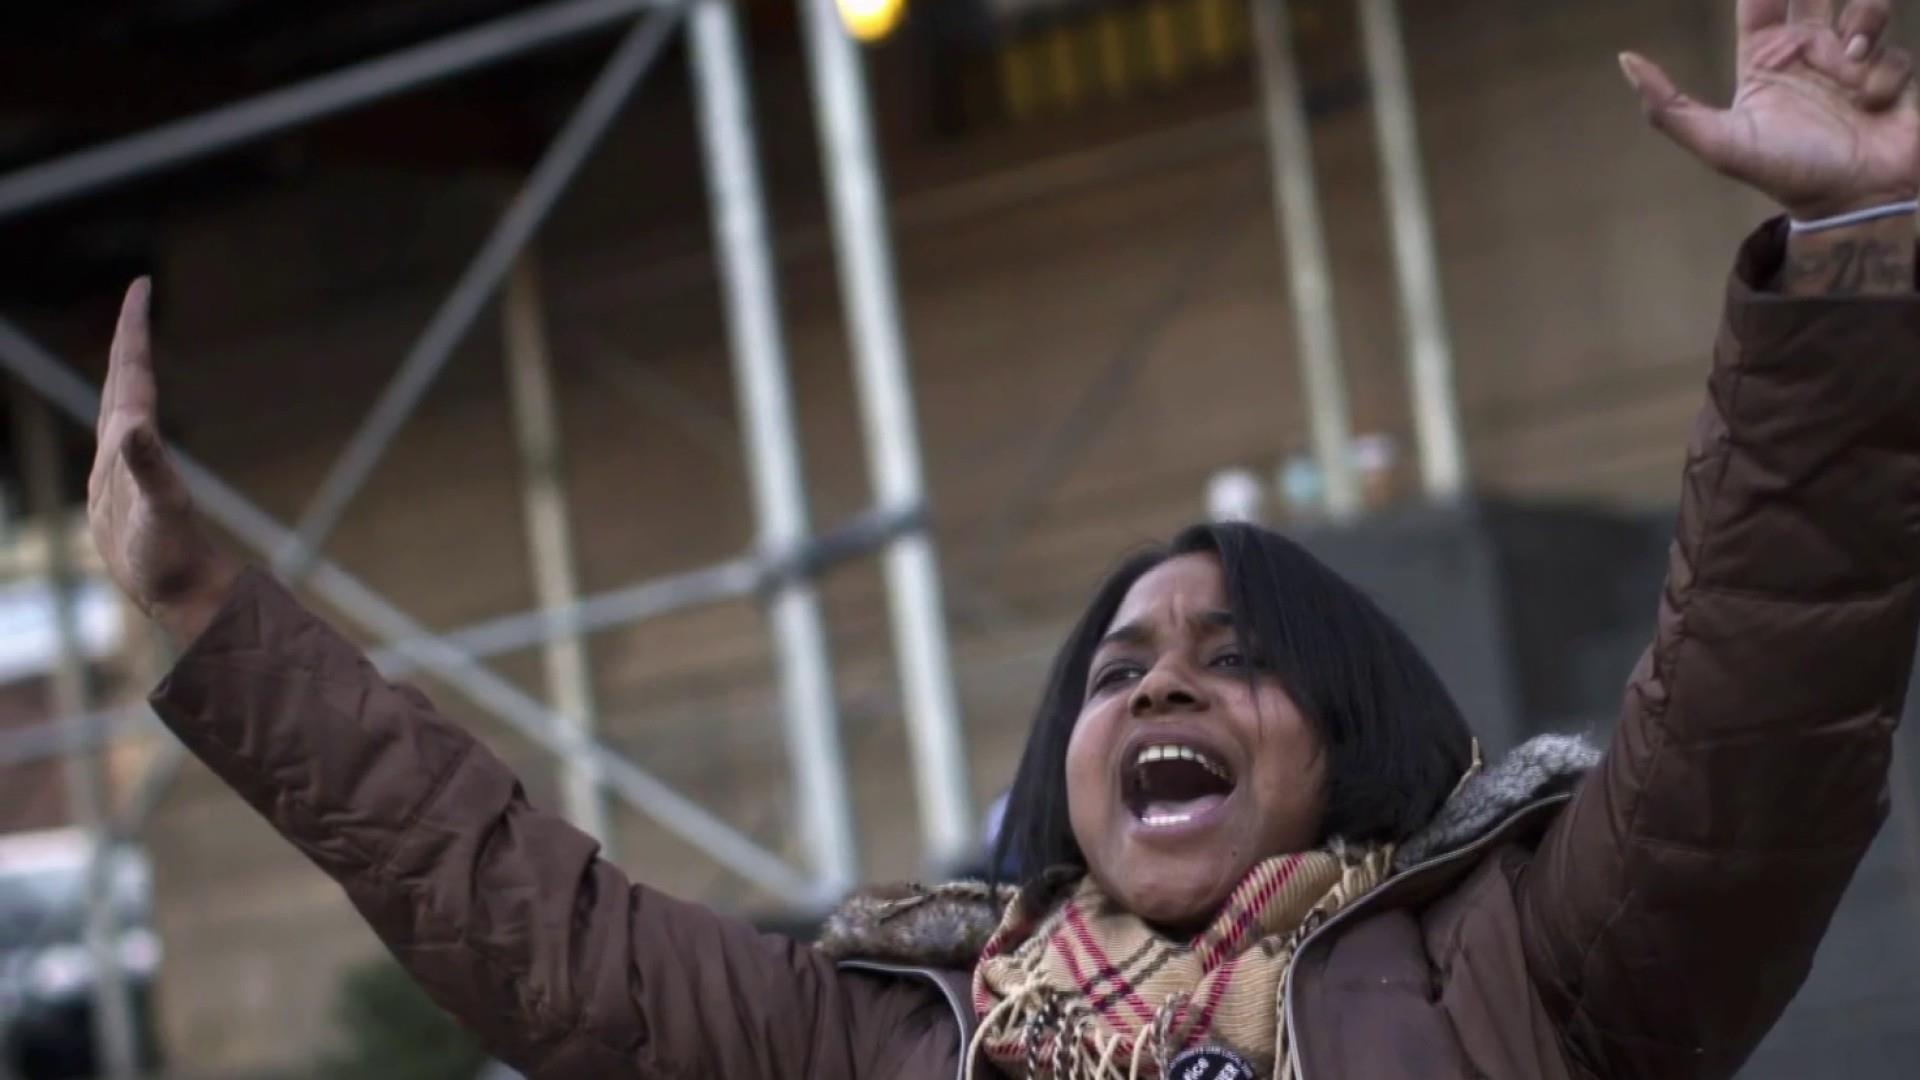 Activist Erica Garner, daughter of Eric Garner, dies at 27